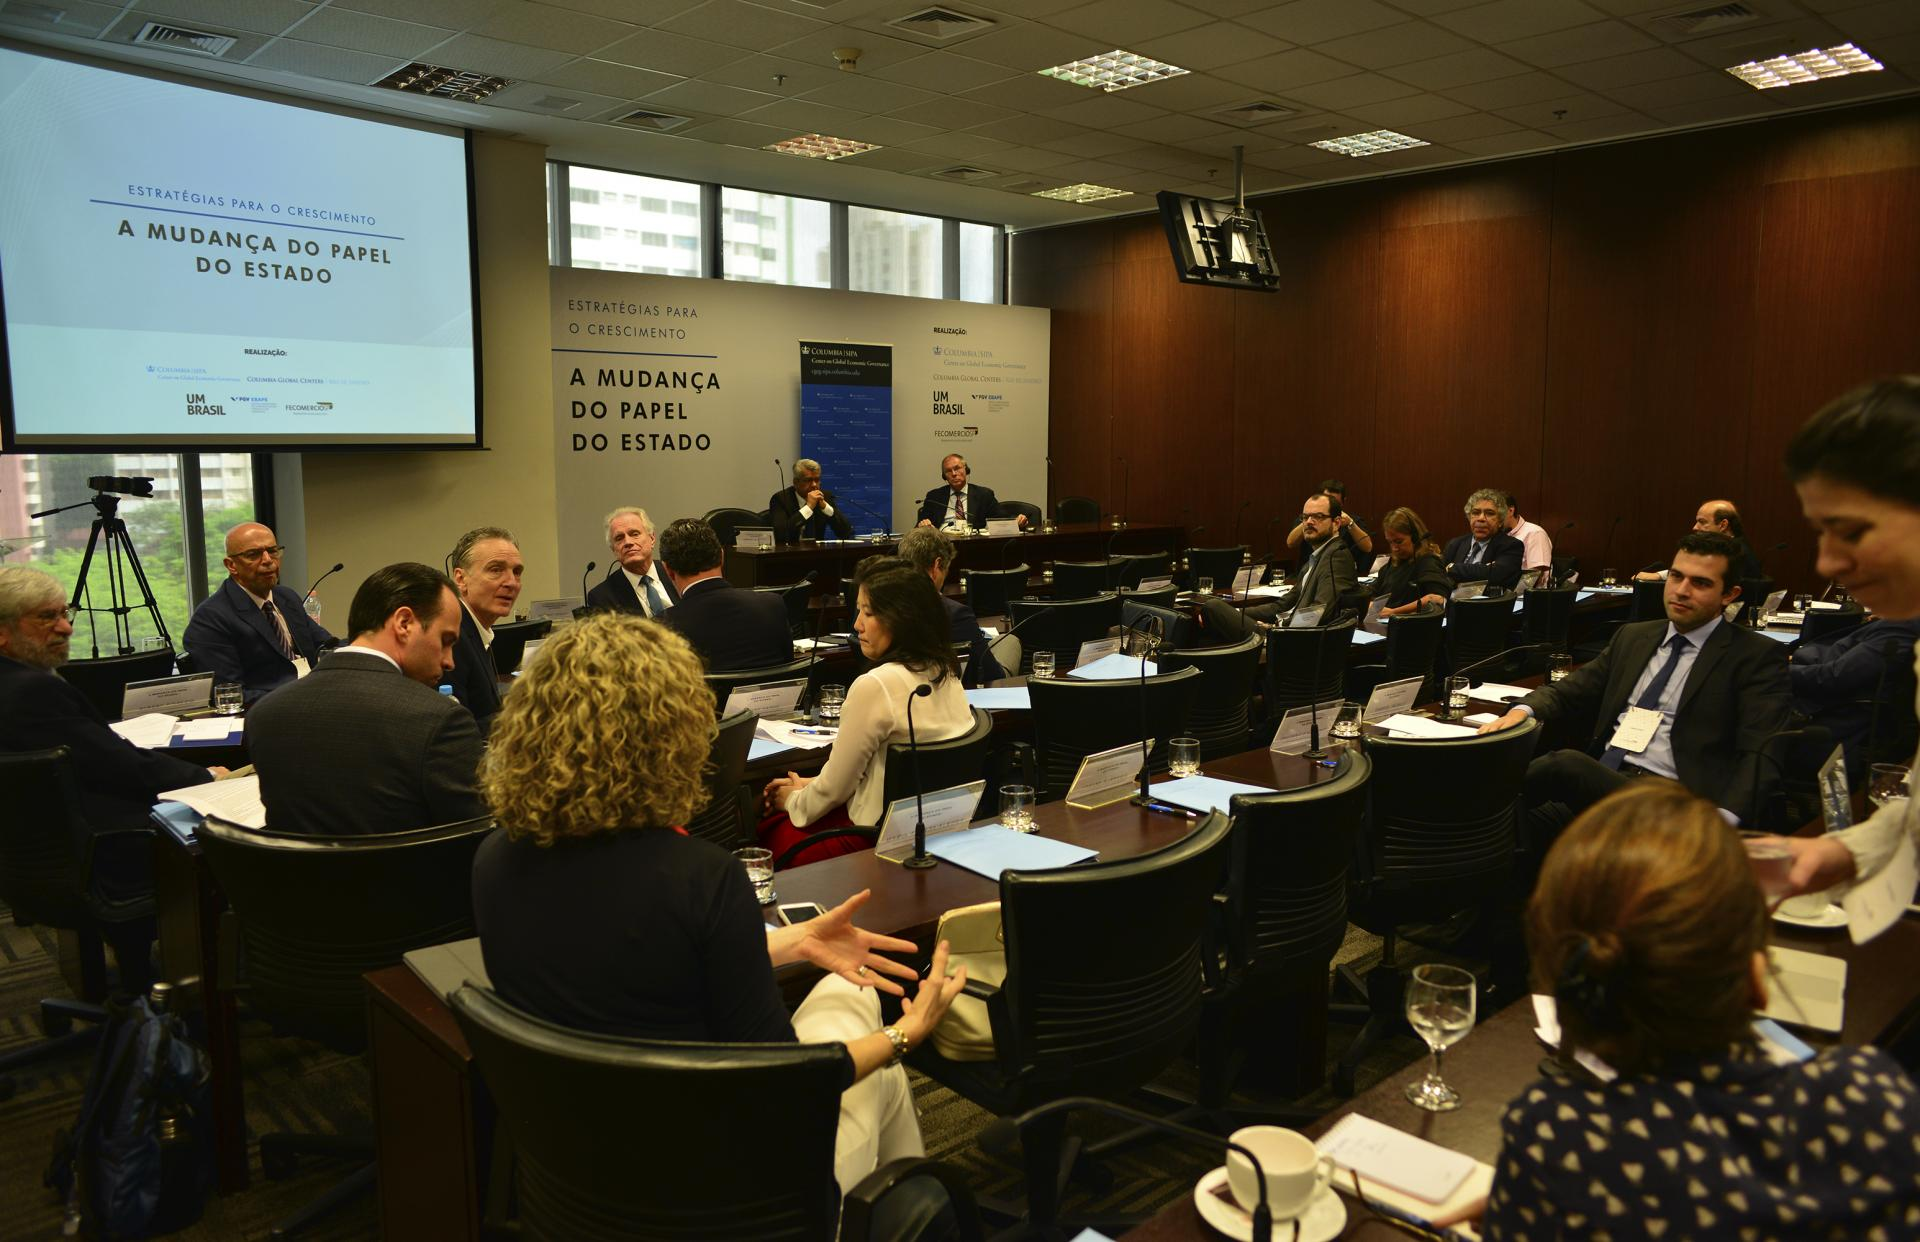 São Paulo | Strategies for Growth: The Changing Role of the State